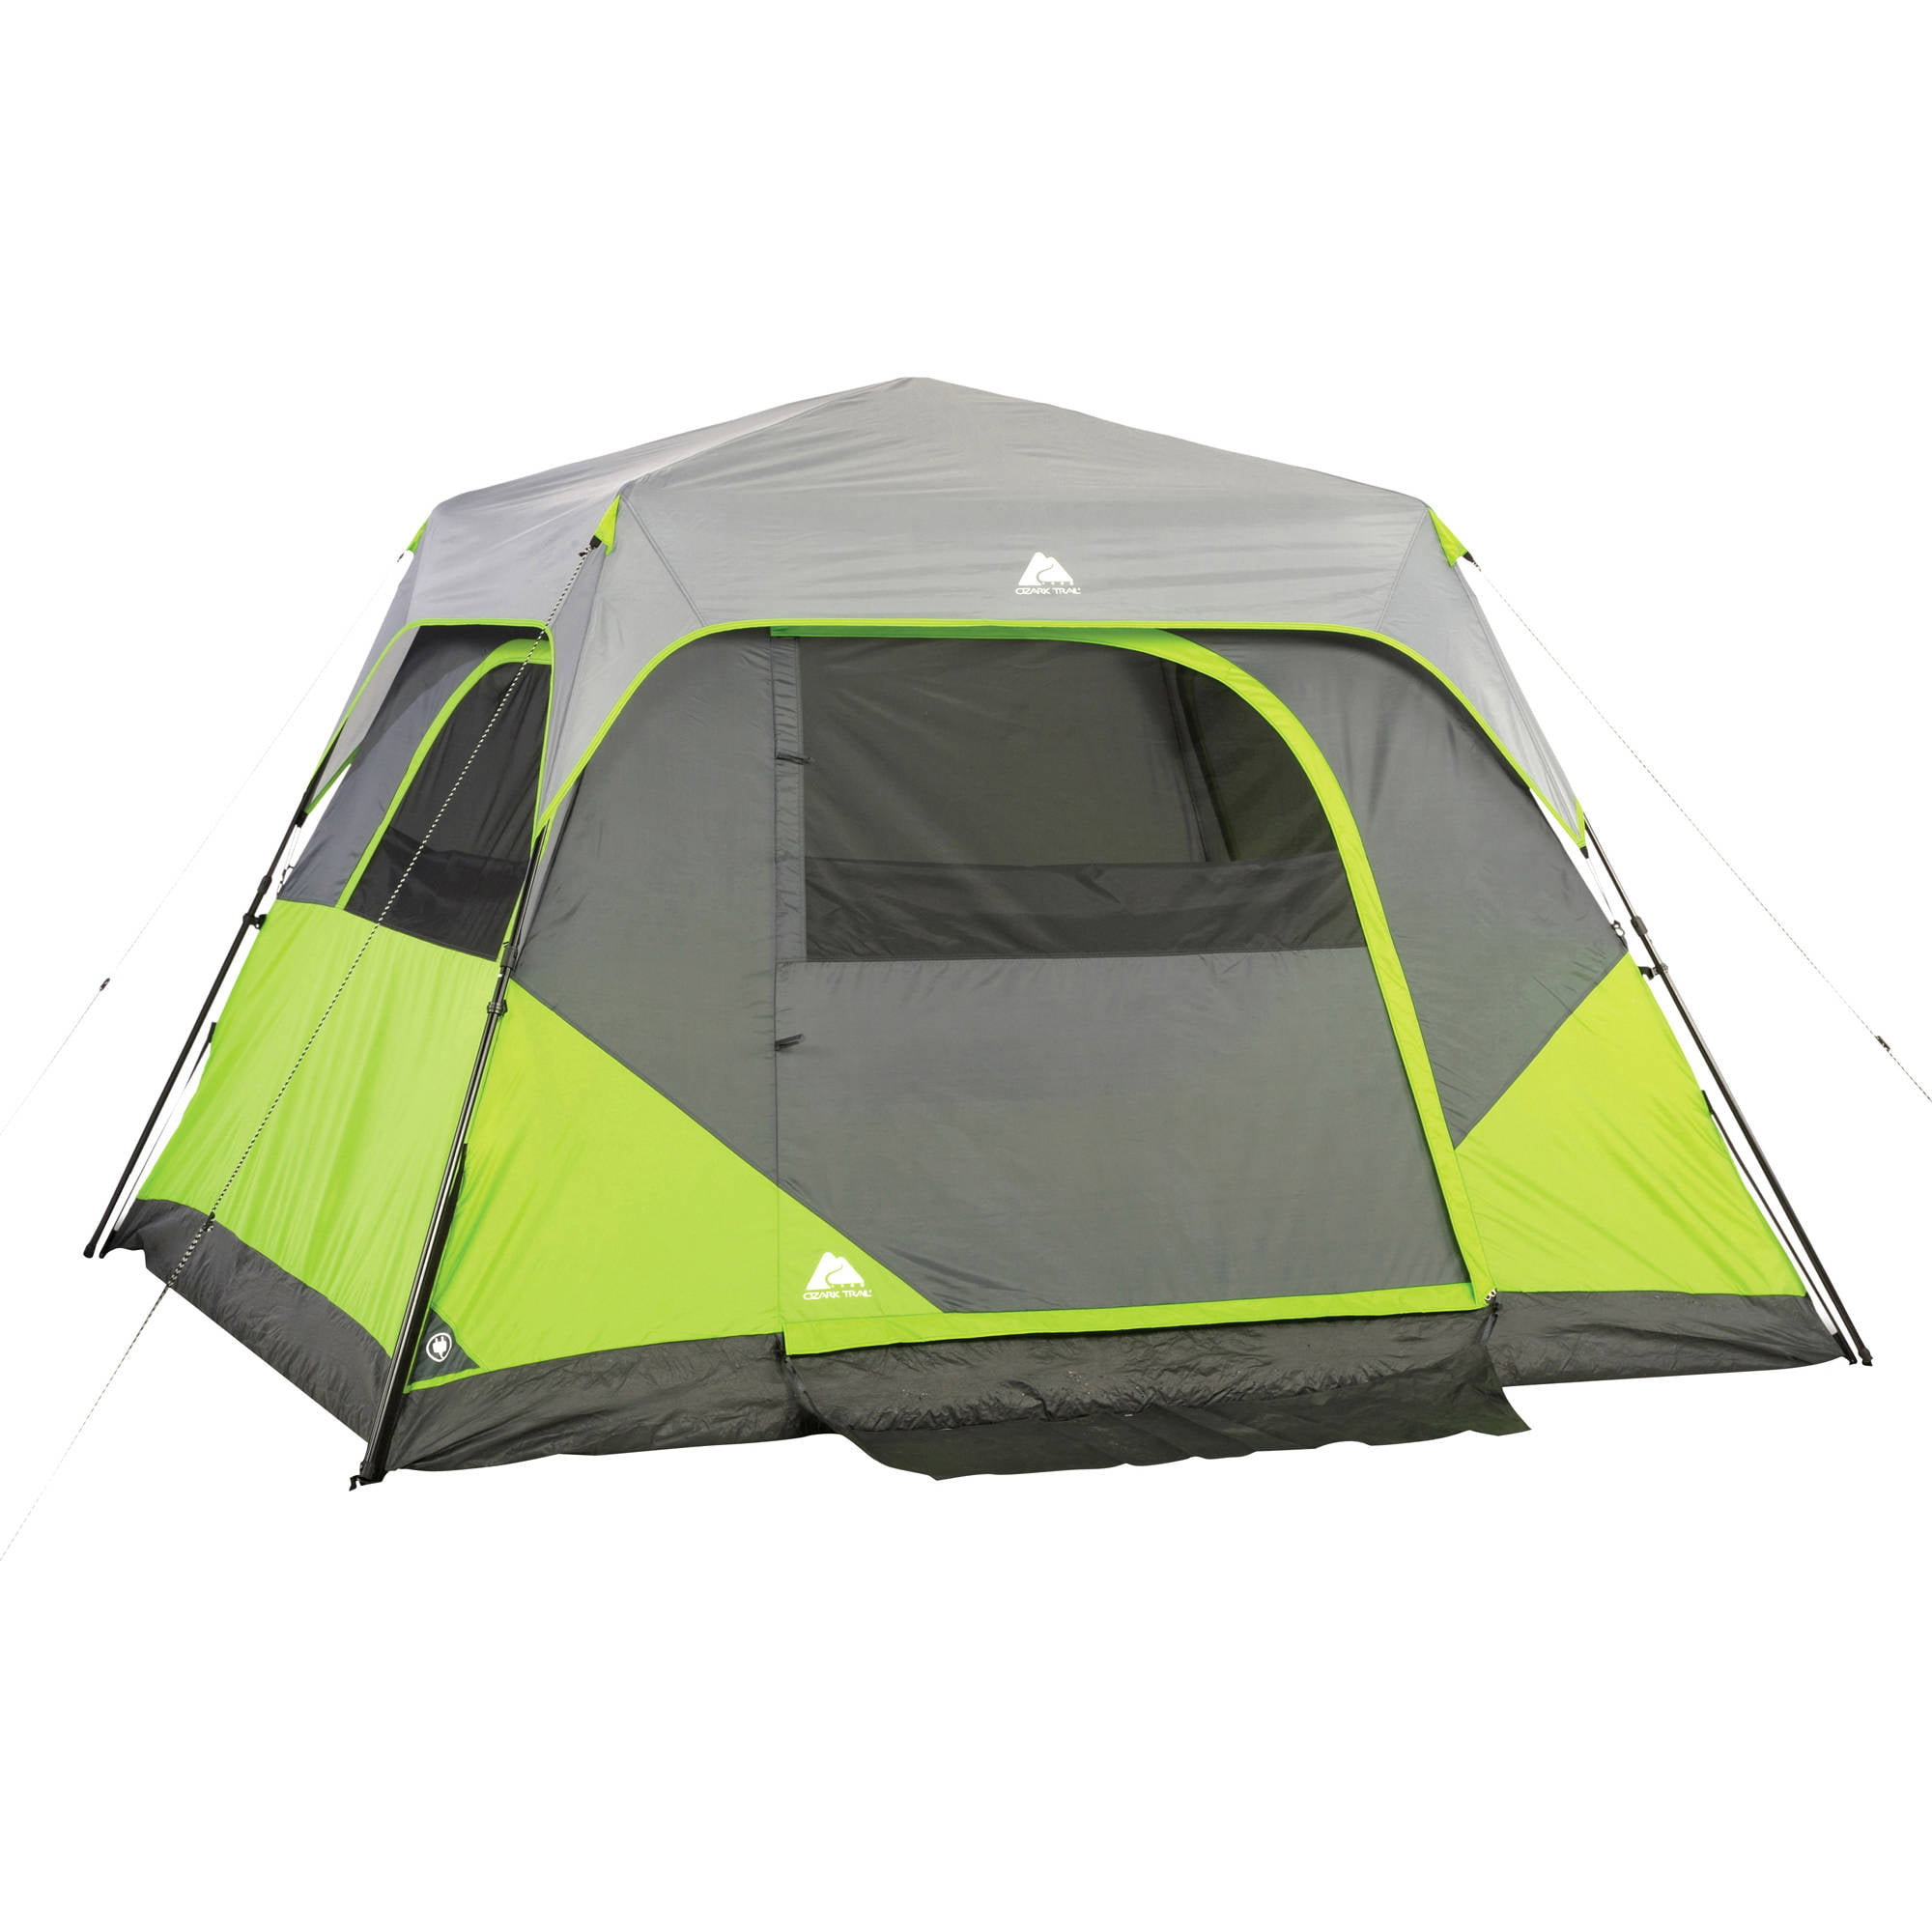 sc 1 st  Walmart : 6 man tent package deals - memphite.com